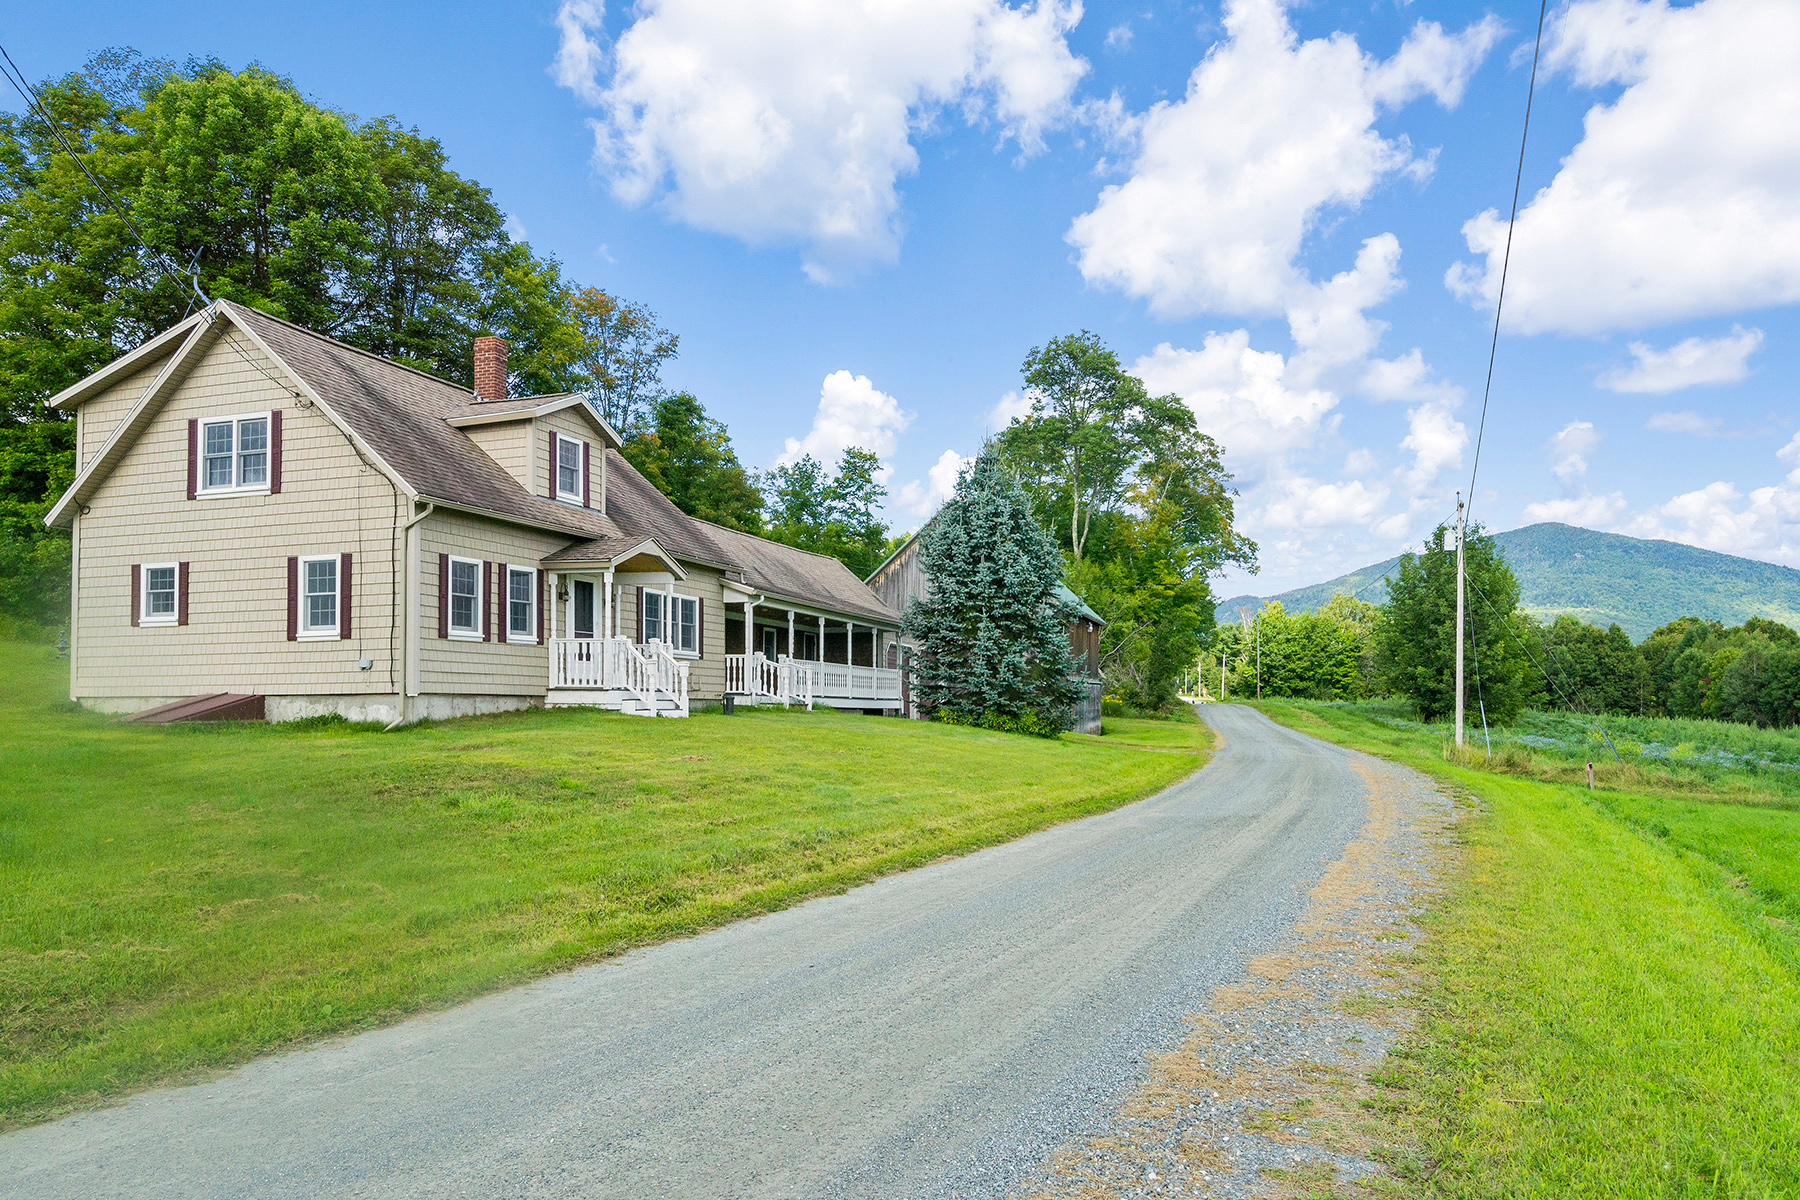 Single Family Homes for Sale at 1645 Masten Road, Victory 1645 Masten Rd Victory, Vermont 05858 United States